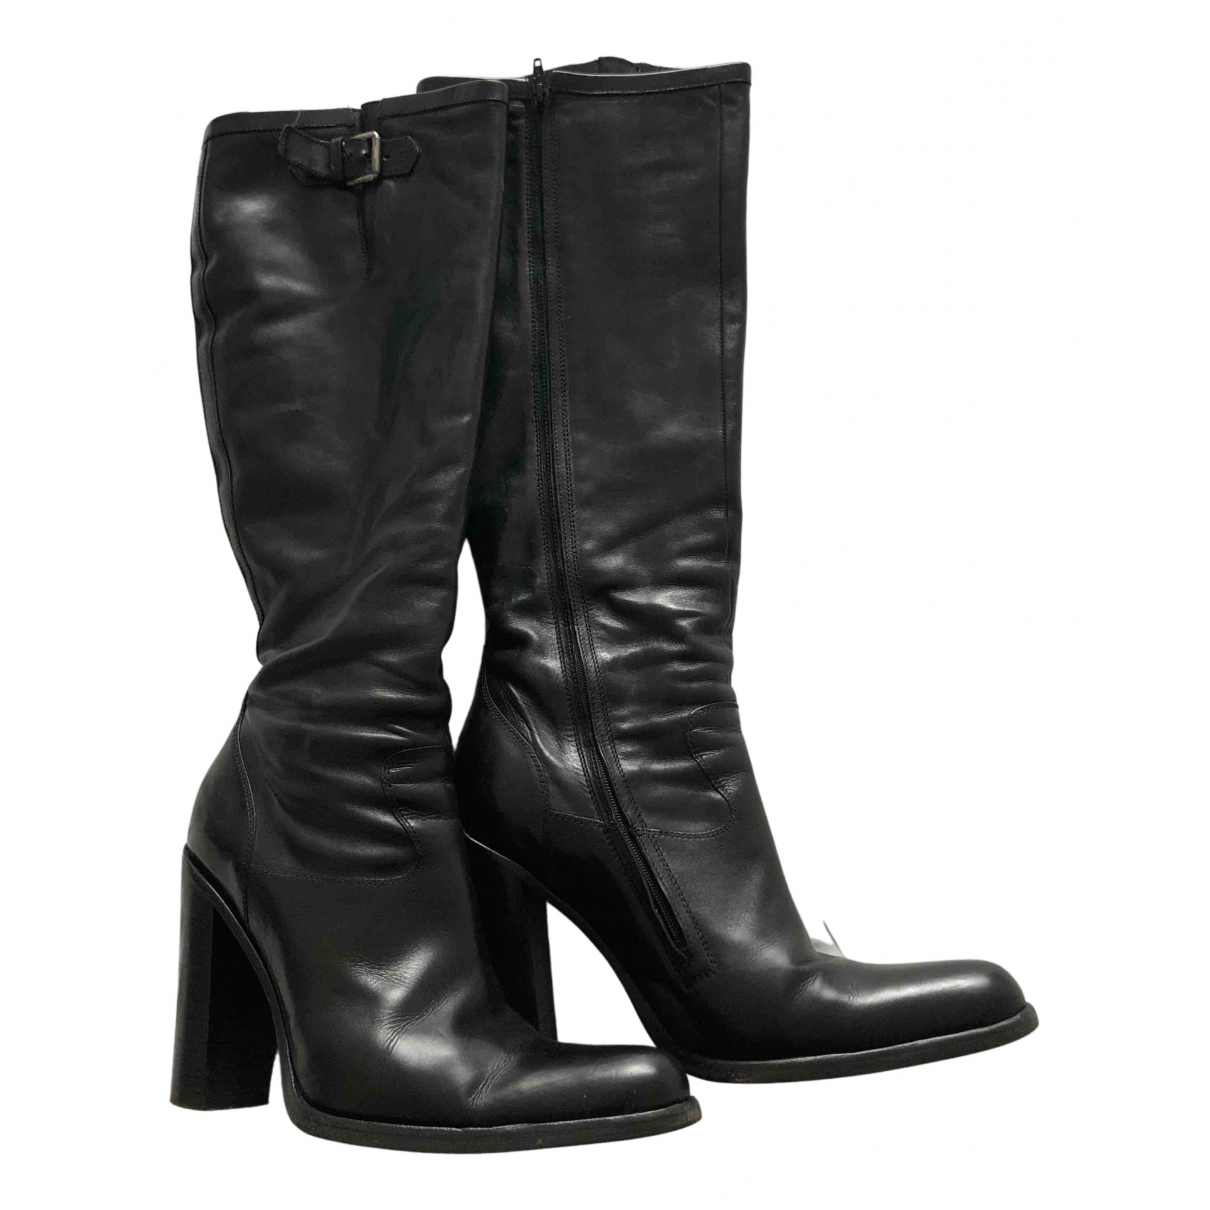 Free Lance Queenie Black Leather Boots for Women 40 EU